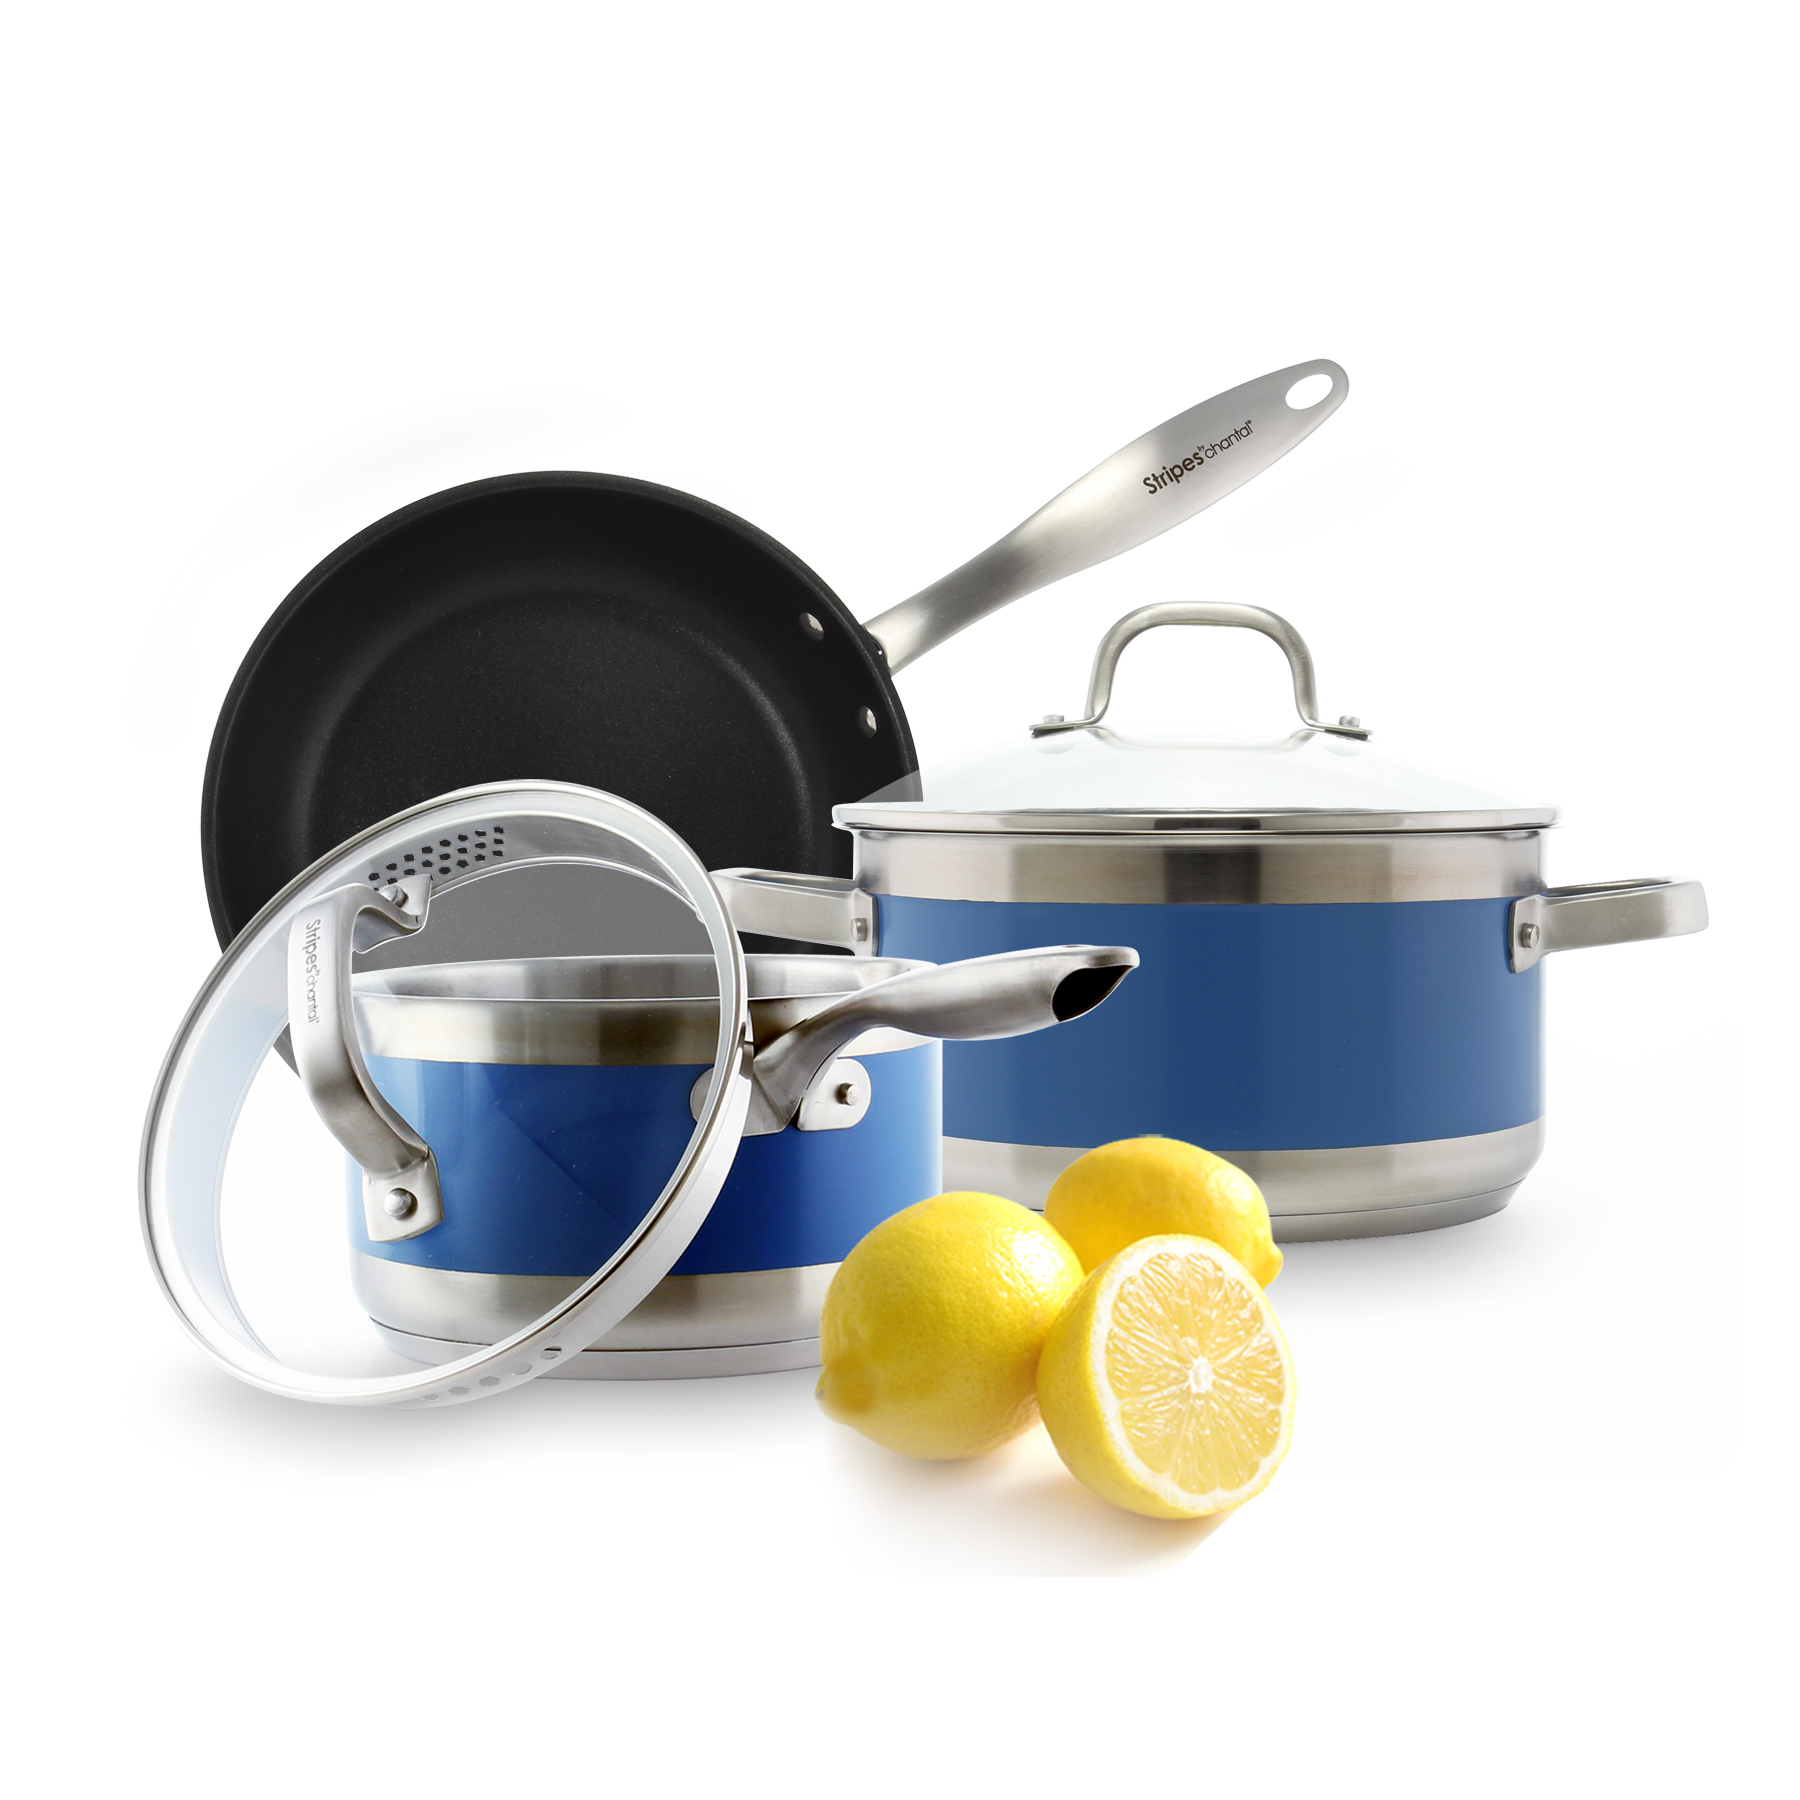 stainless steel stockpot fry pan and pour spout saucepan set blue stripe